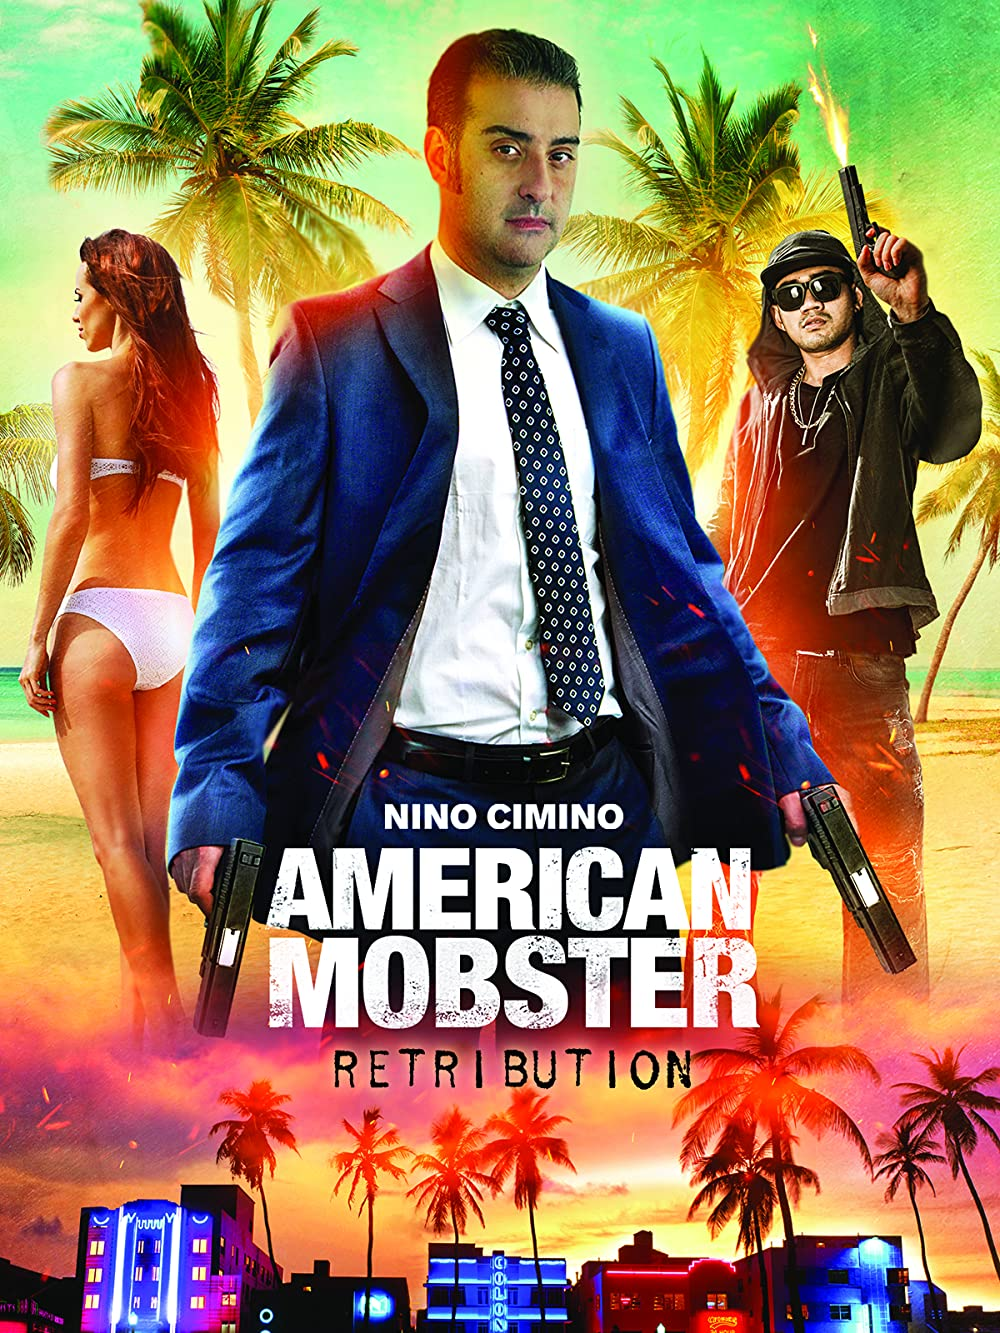 American Mobster Retribution 2021 English 720p HDRip 700MB Download